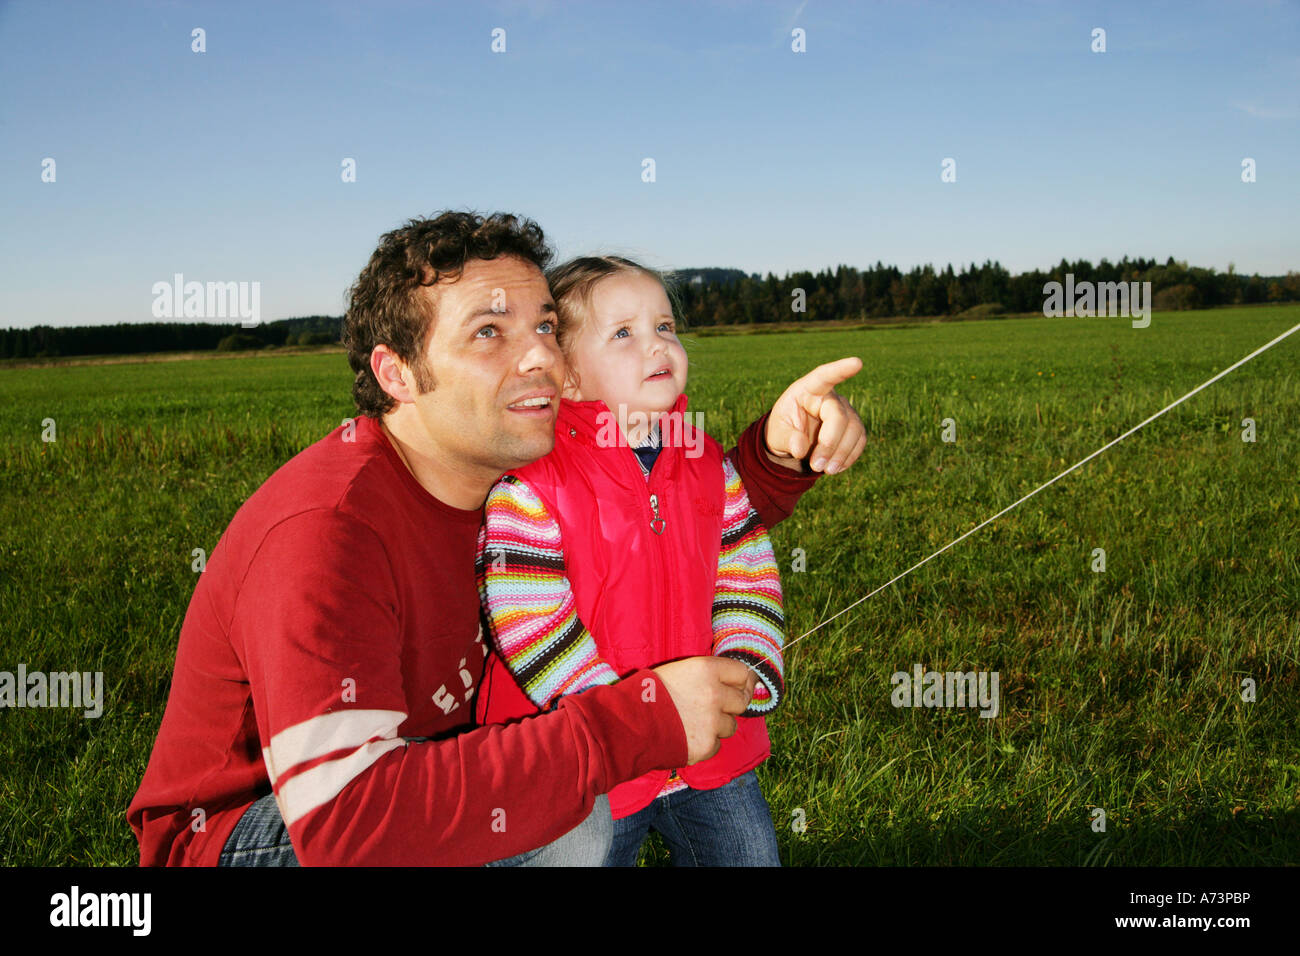 playing with kite - Stock Image